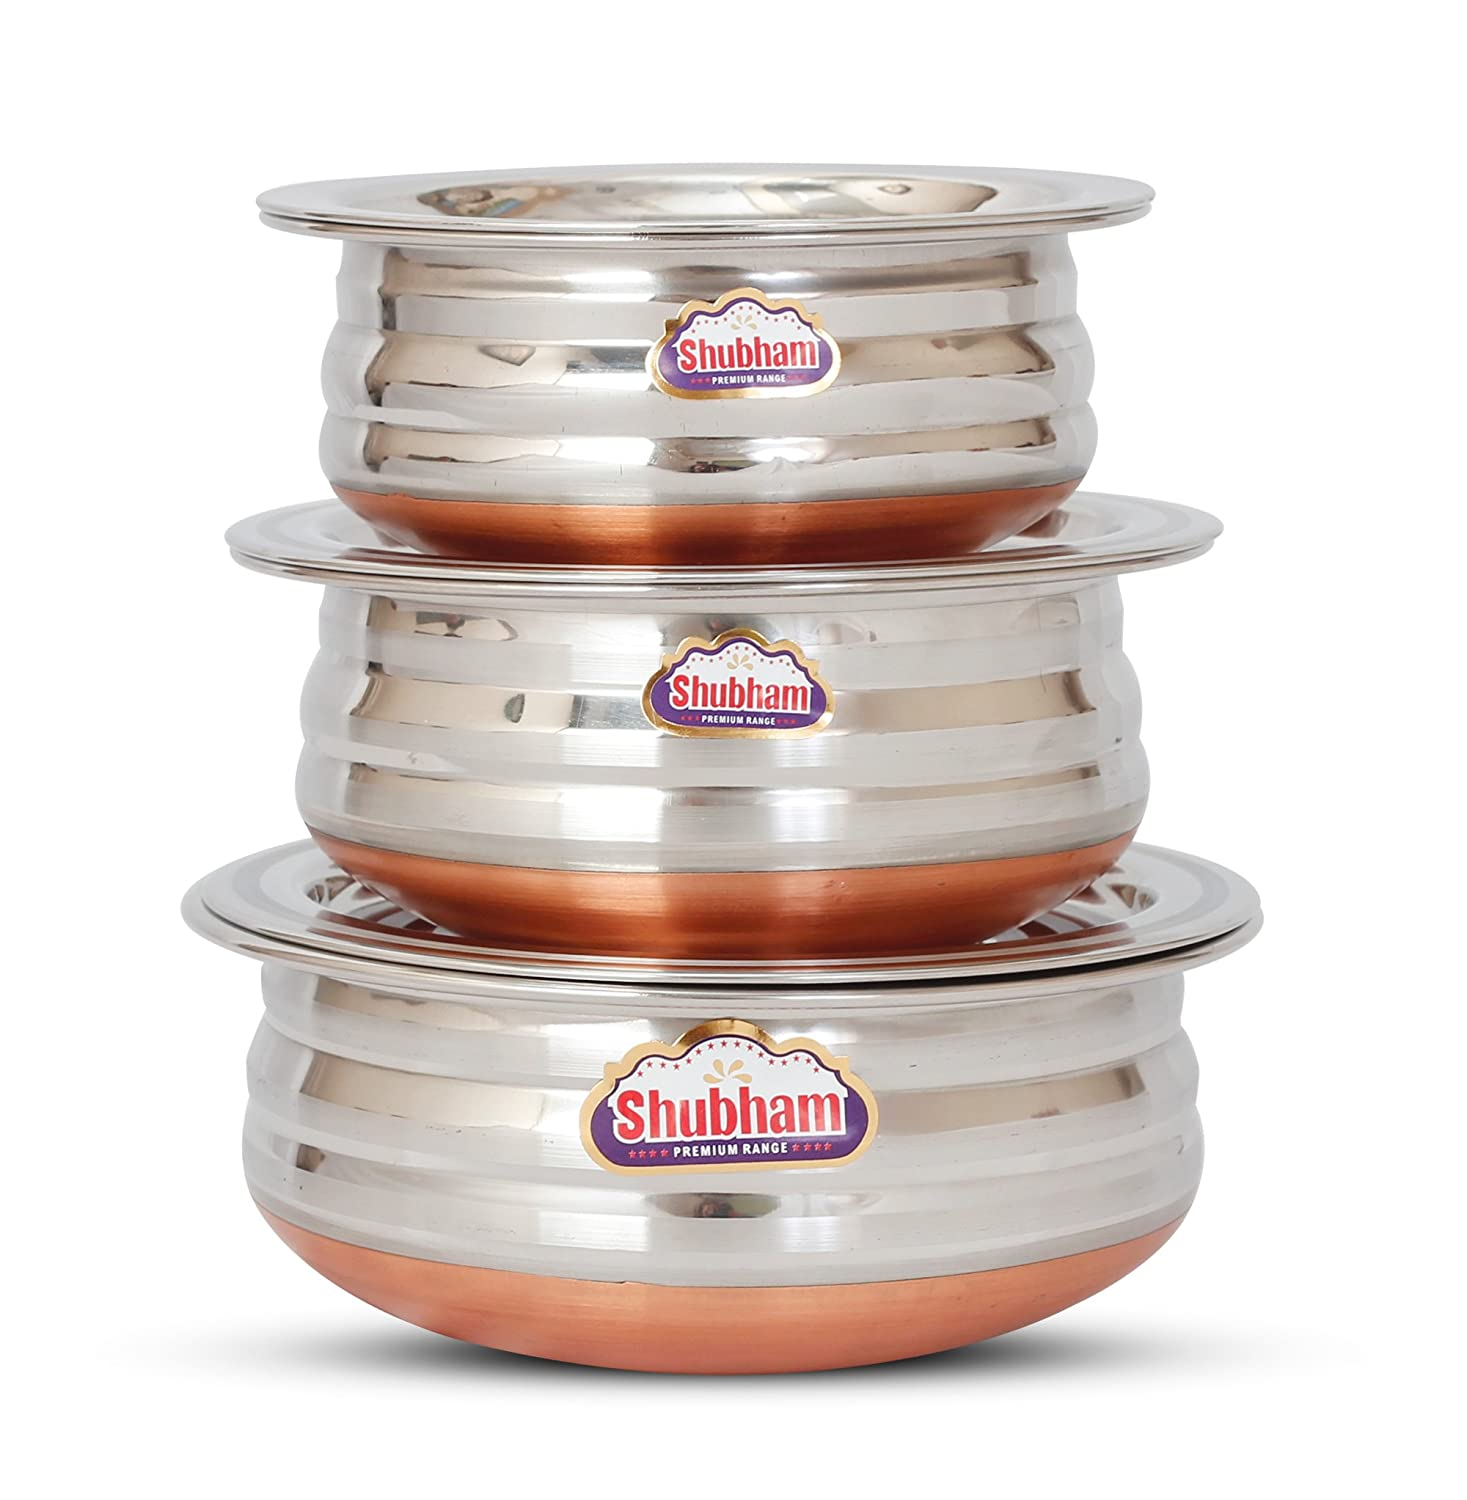 efe923eb1b6 Buy Shubham Copper Bottom Container Urli With Lid - 3 Pcs Set S10-12 Online  at Low Prices in India - Amazon.in